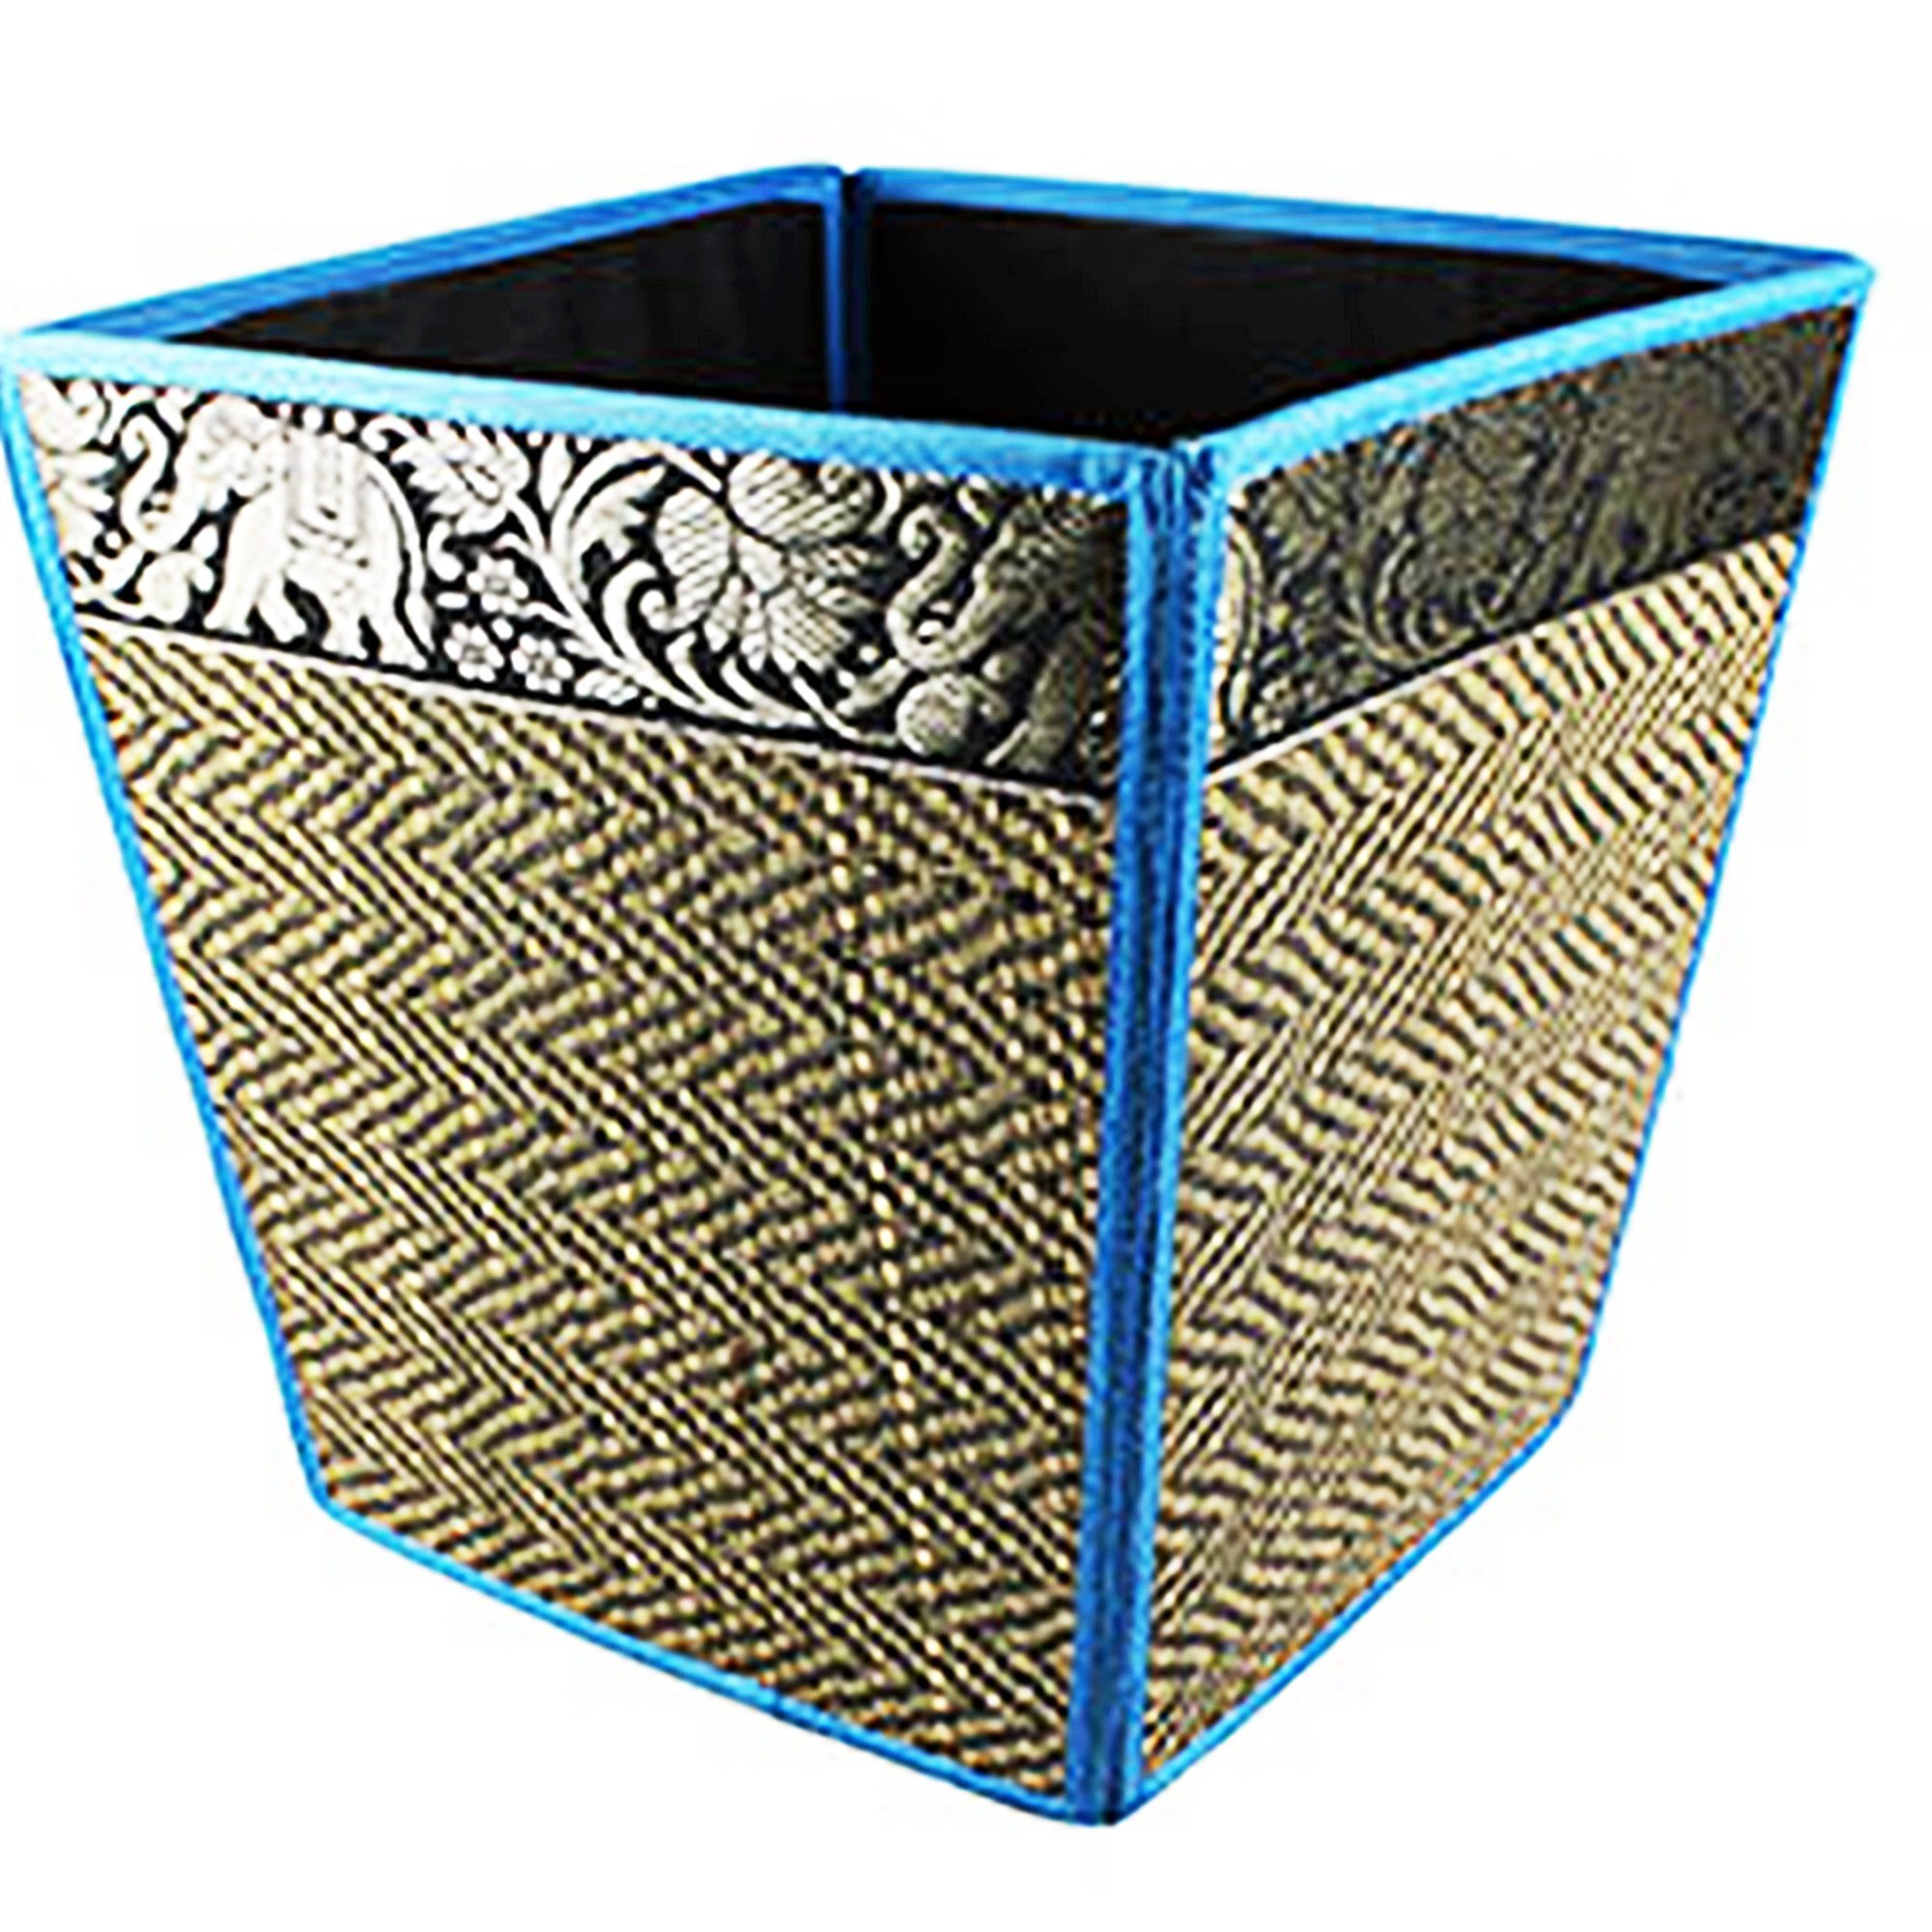 chantubtimplaza Waste Basket Thai Elephant Silk Reed Paper Bin Home Decor Blue Color by chantubtimplaza